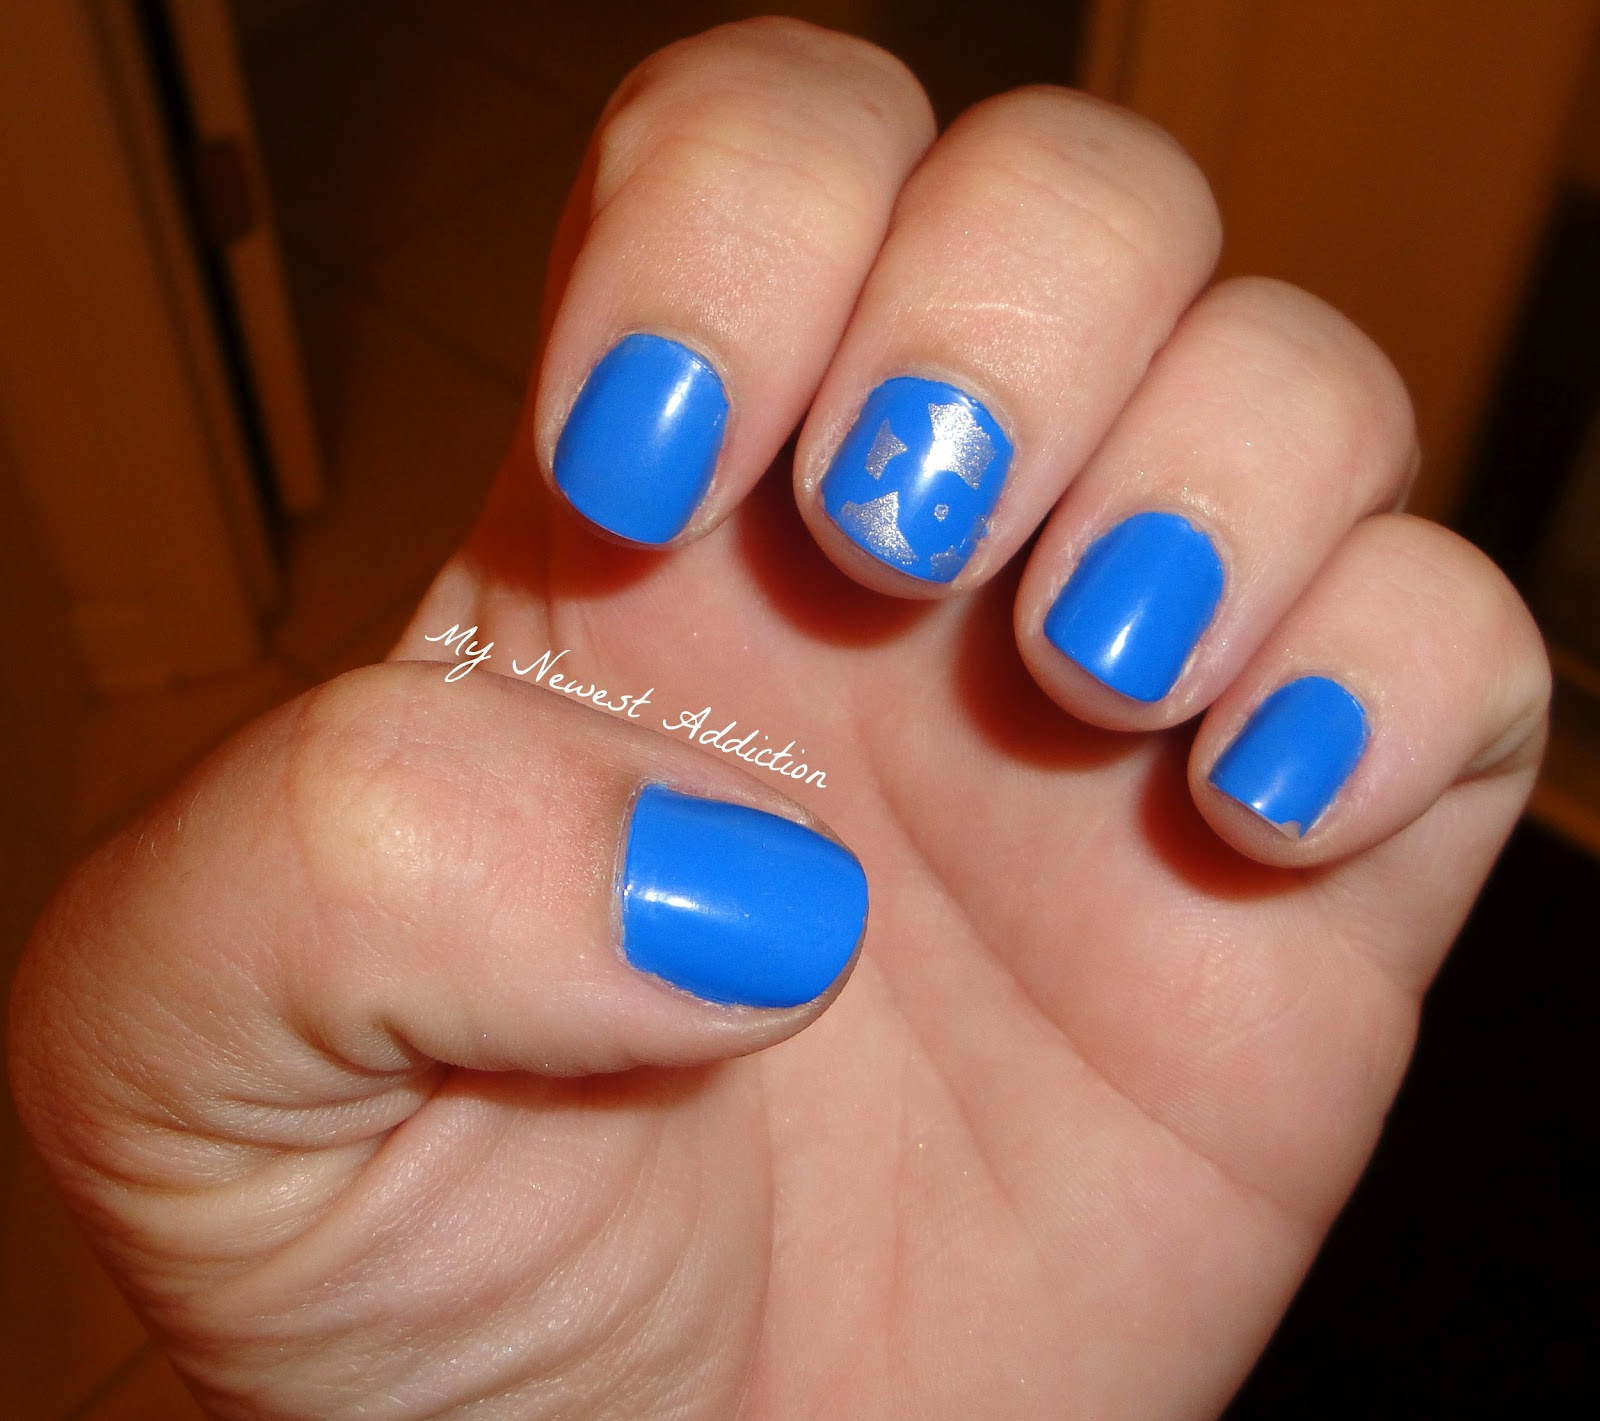 Sally Hansen Pacific Blue and a star stamp of Sally Hansen Celeb City!